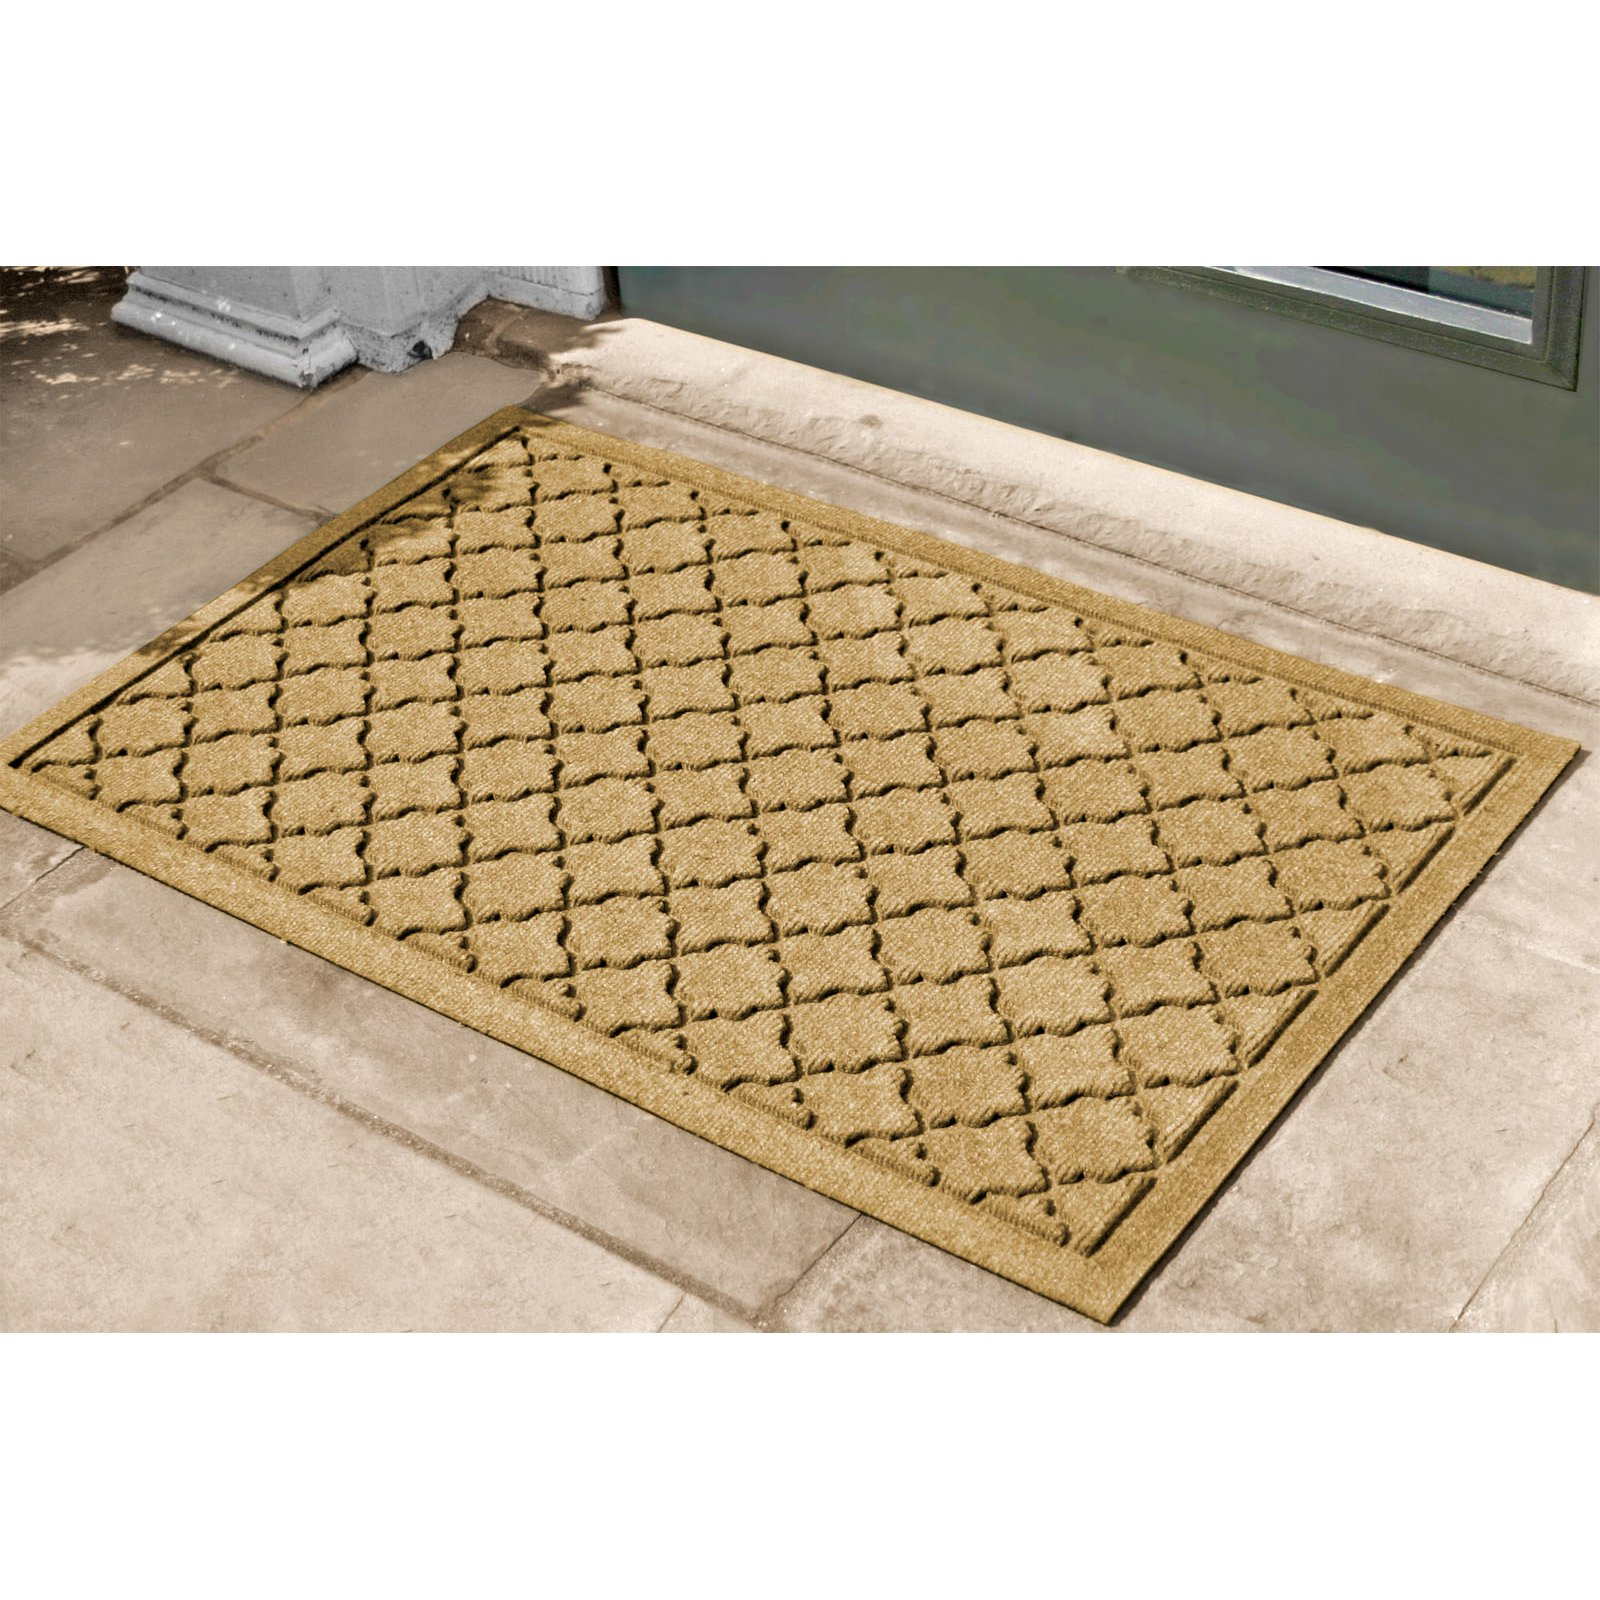 Bungalow Flooring Water Guard Cordova Indoor / Outdoor Door Mat